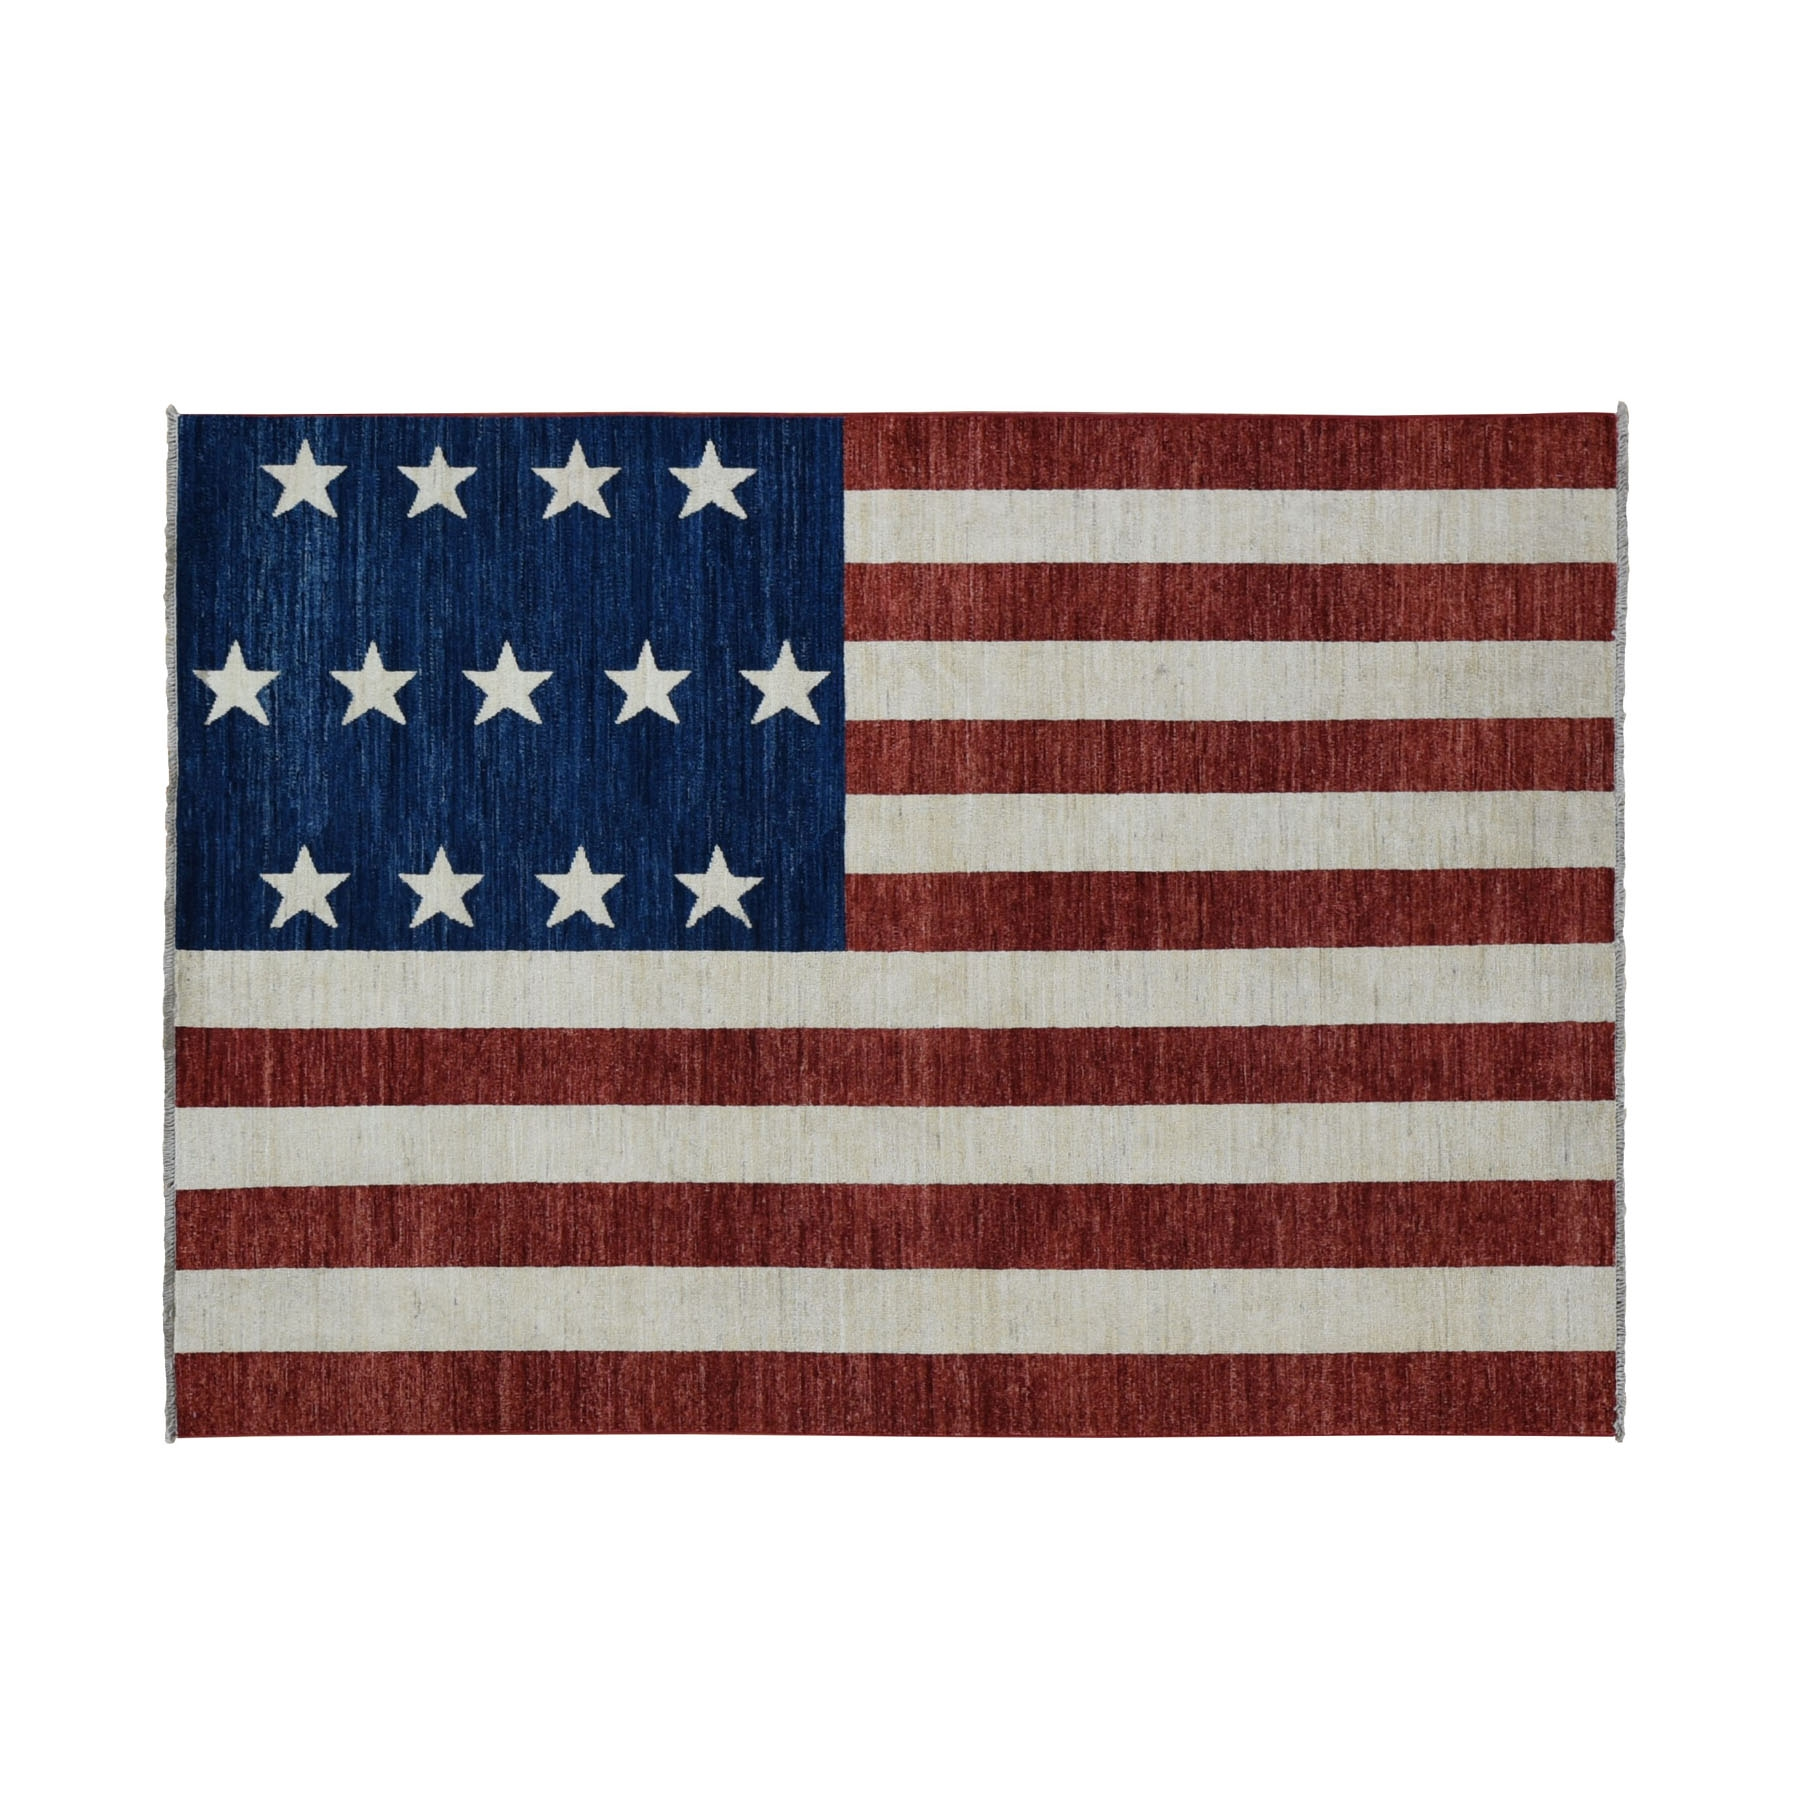 5'X7' Pure Wool Vintage Look American History Hand-Knotted Flag Design Wall Hanging Rug moad6b99